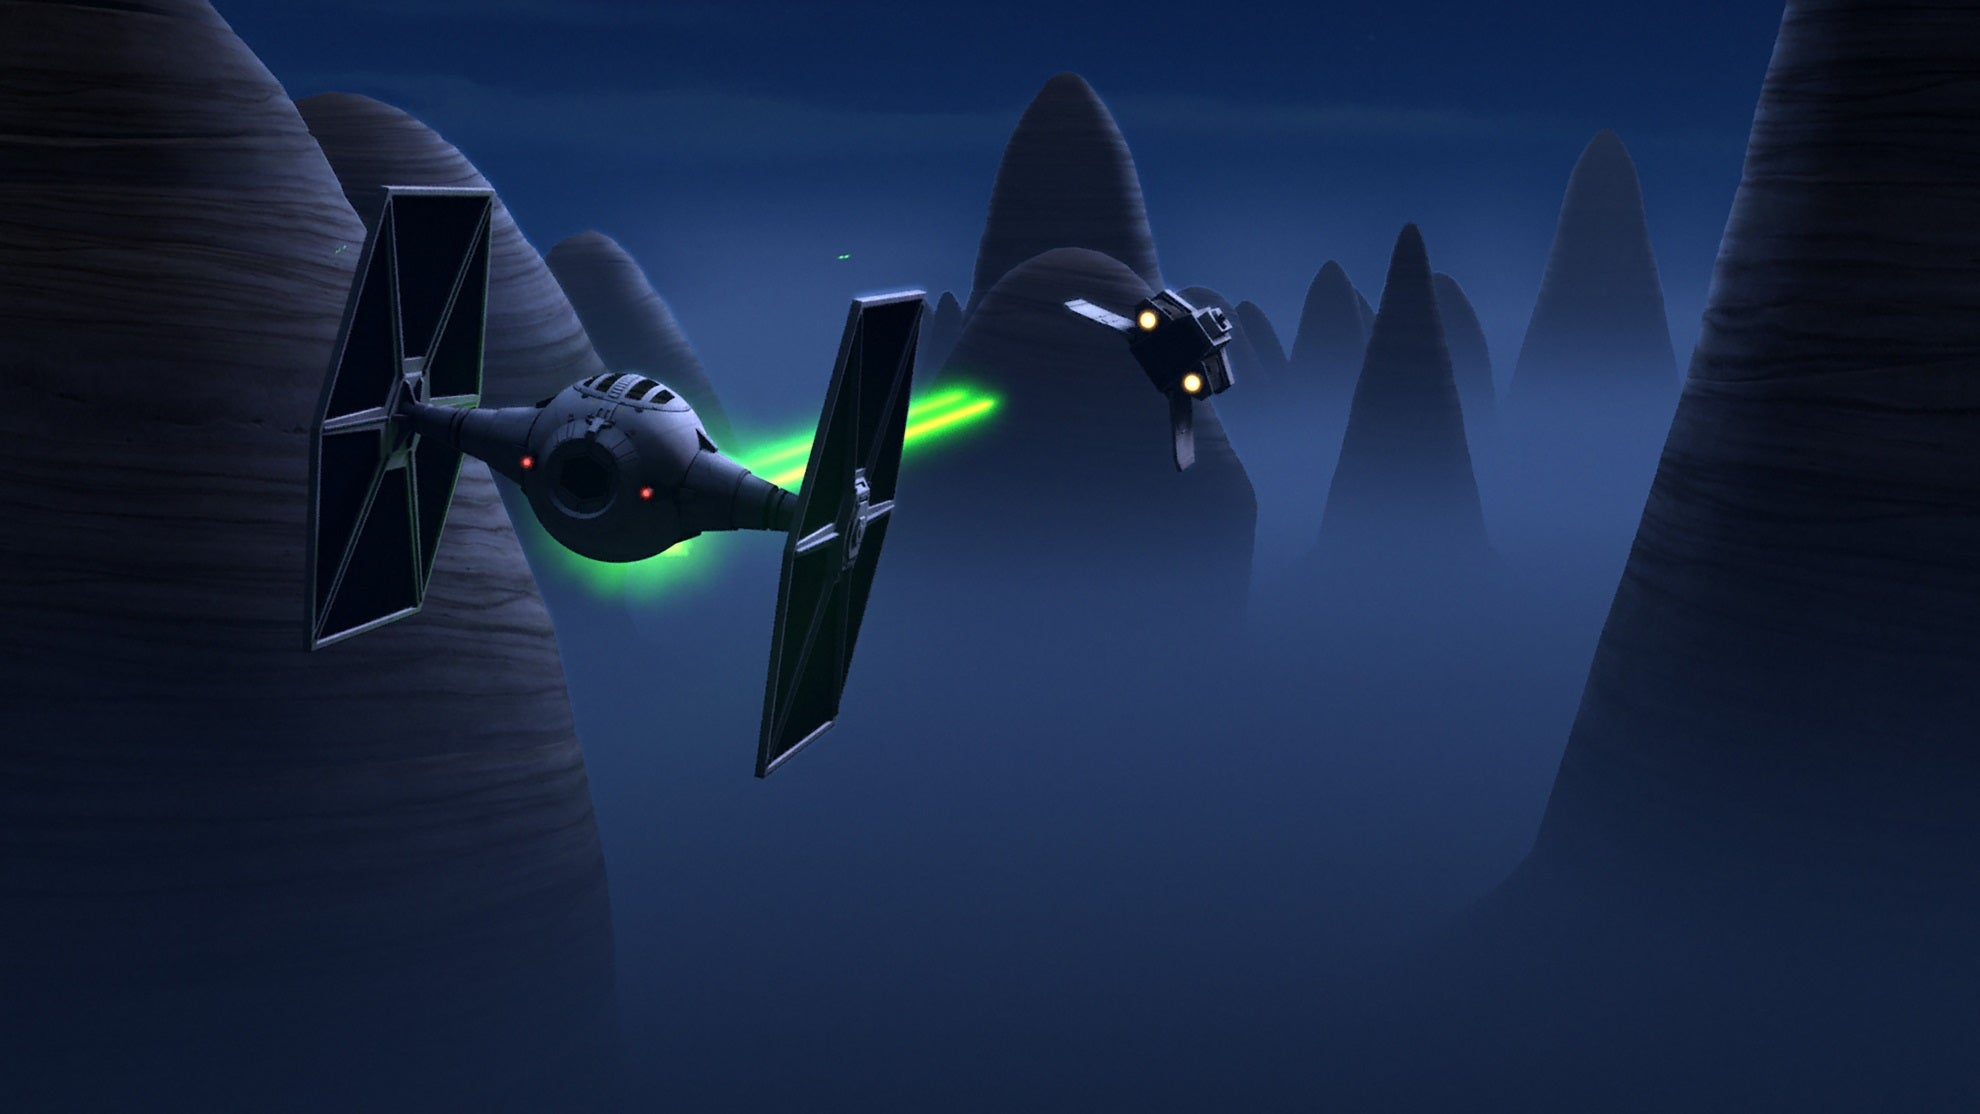 Star wars rebels episode 7 out of darkness / Wong fu